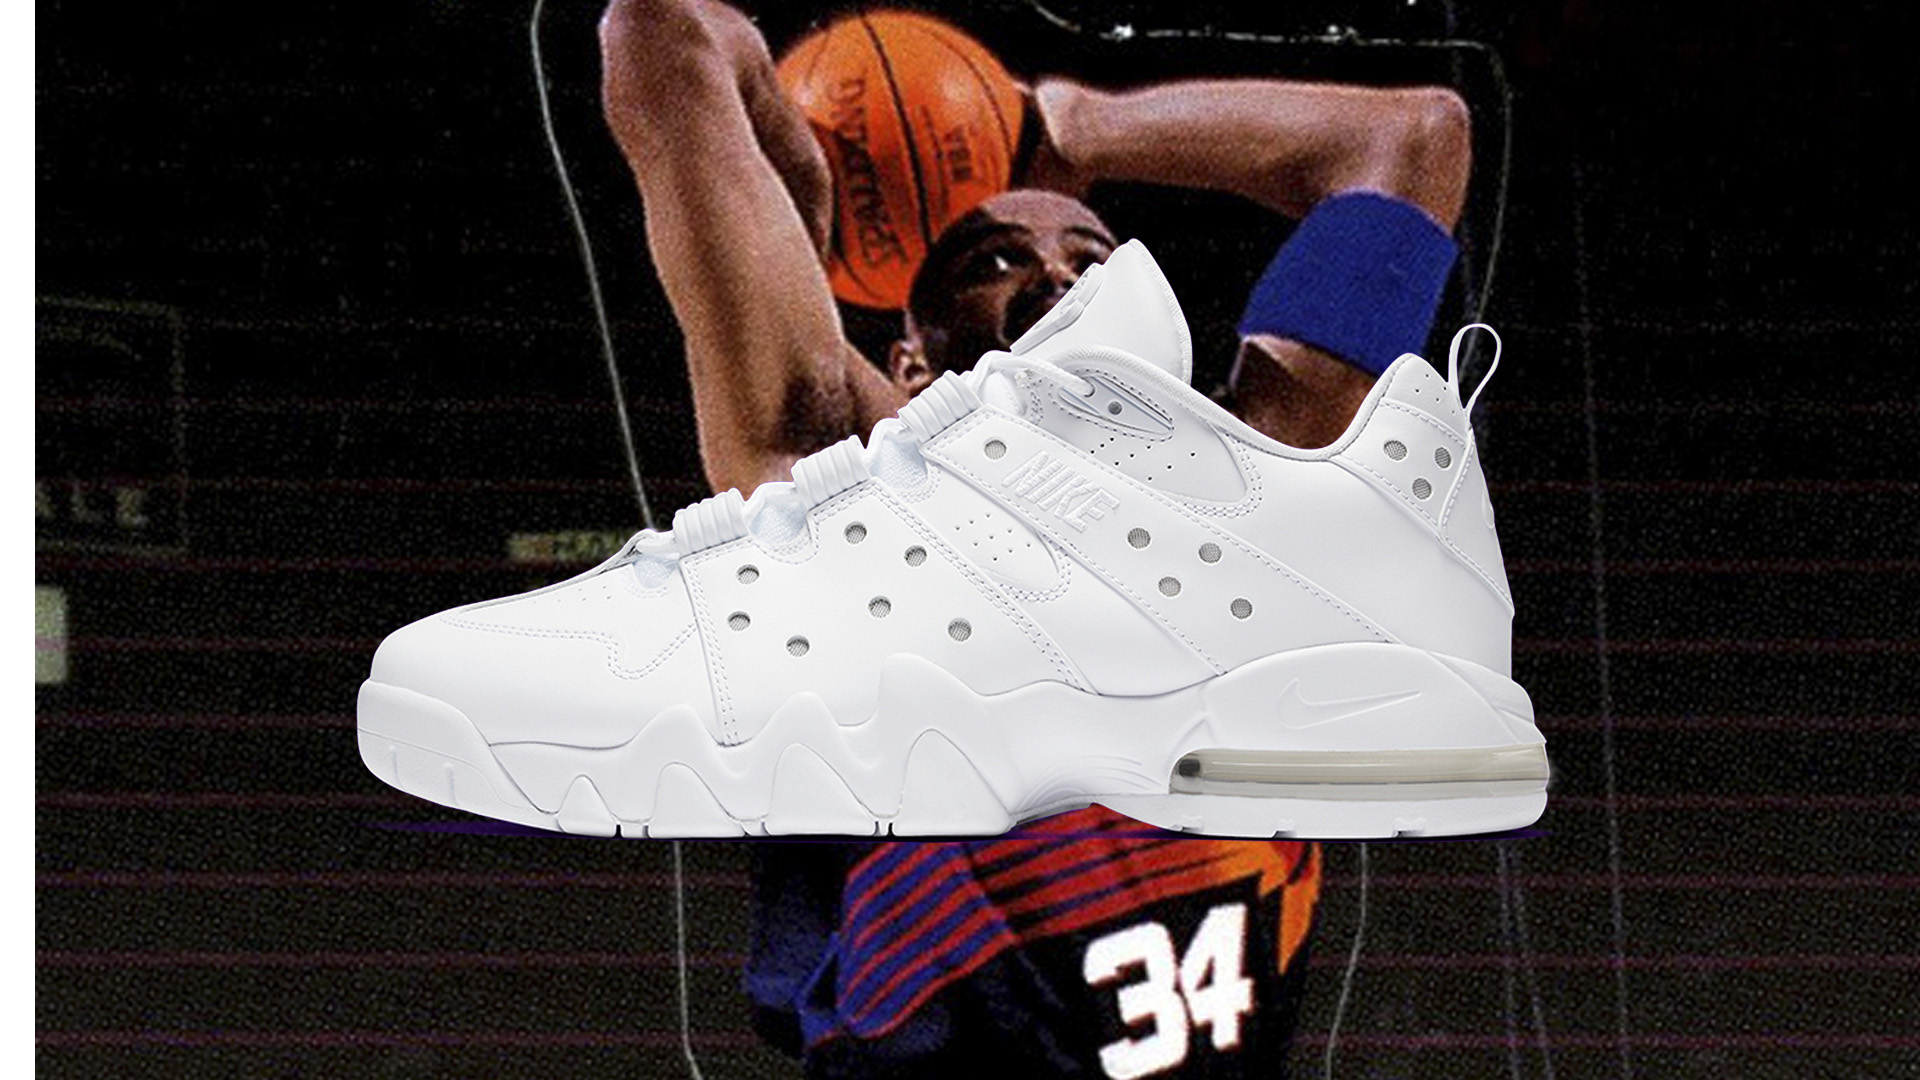 charles barkley force shoes nike hyperdunk low 2013